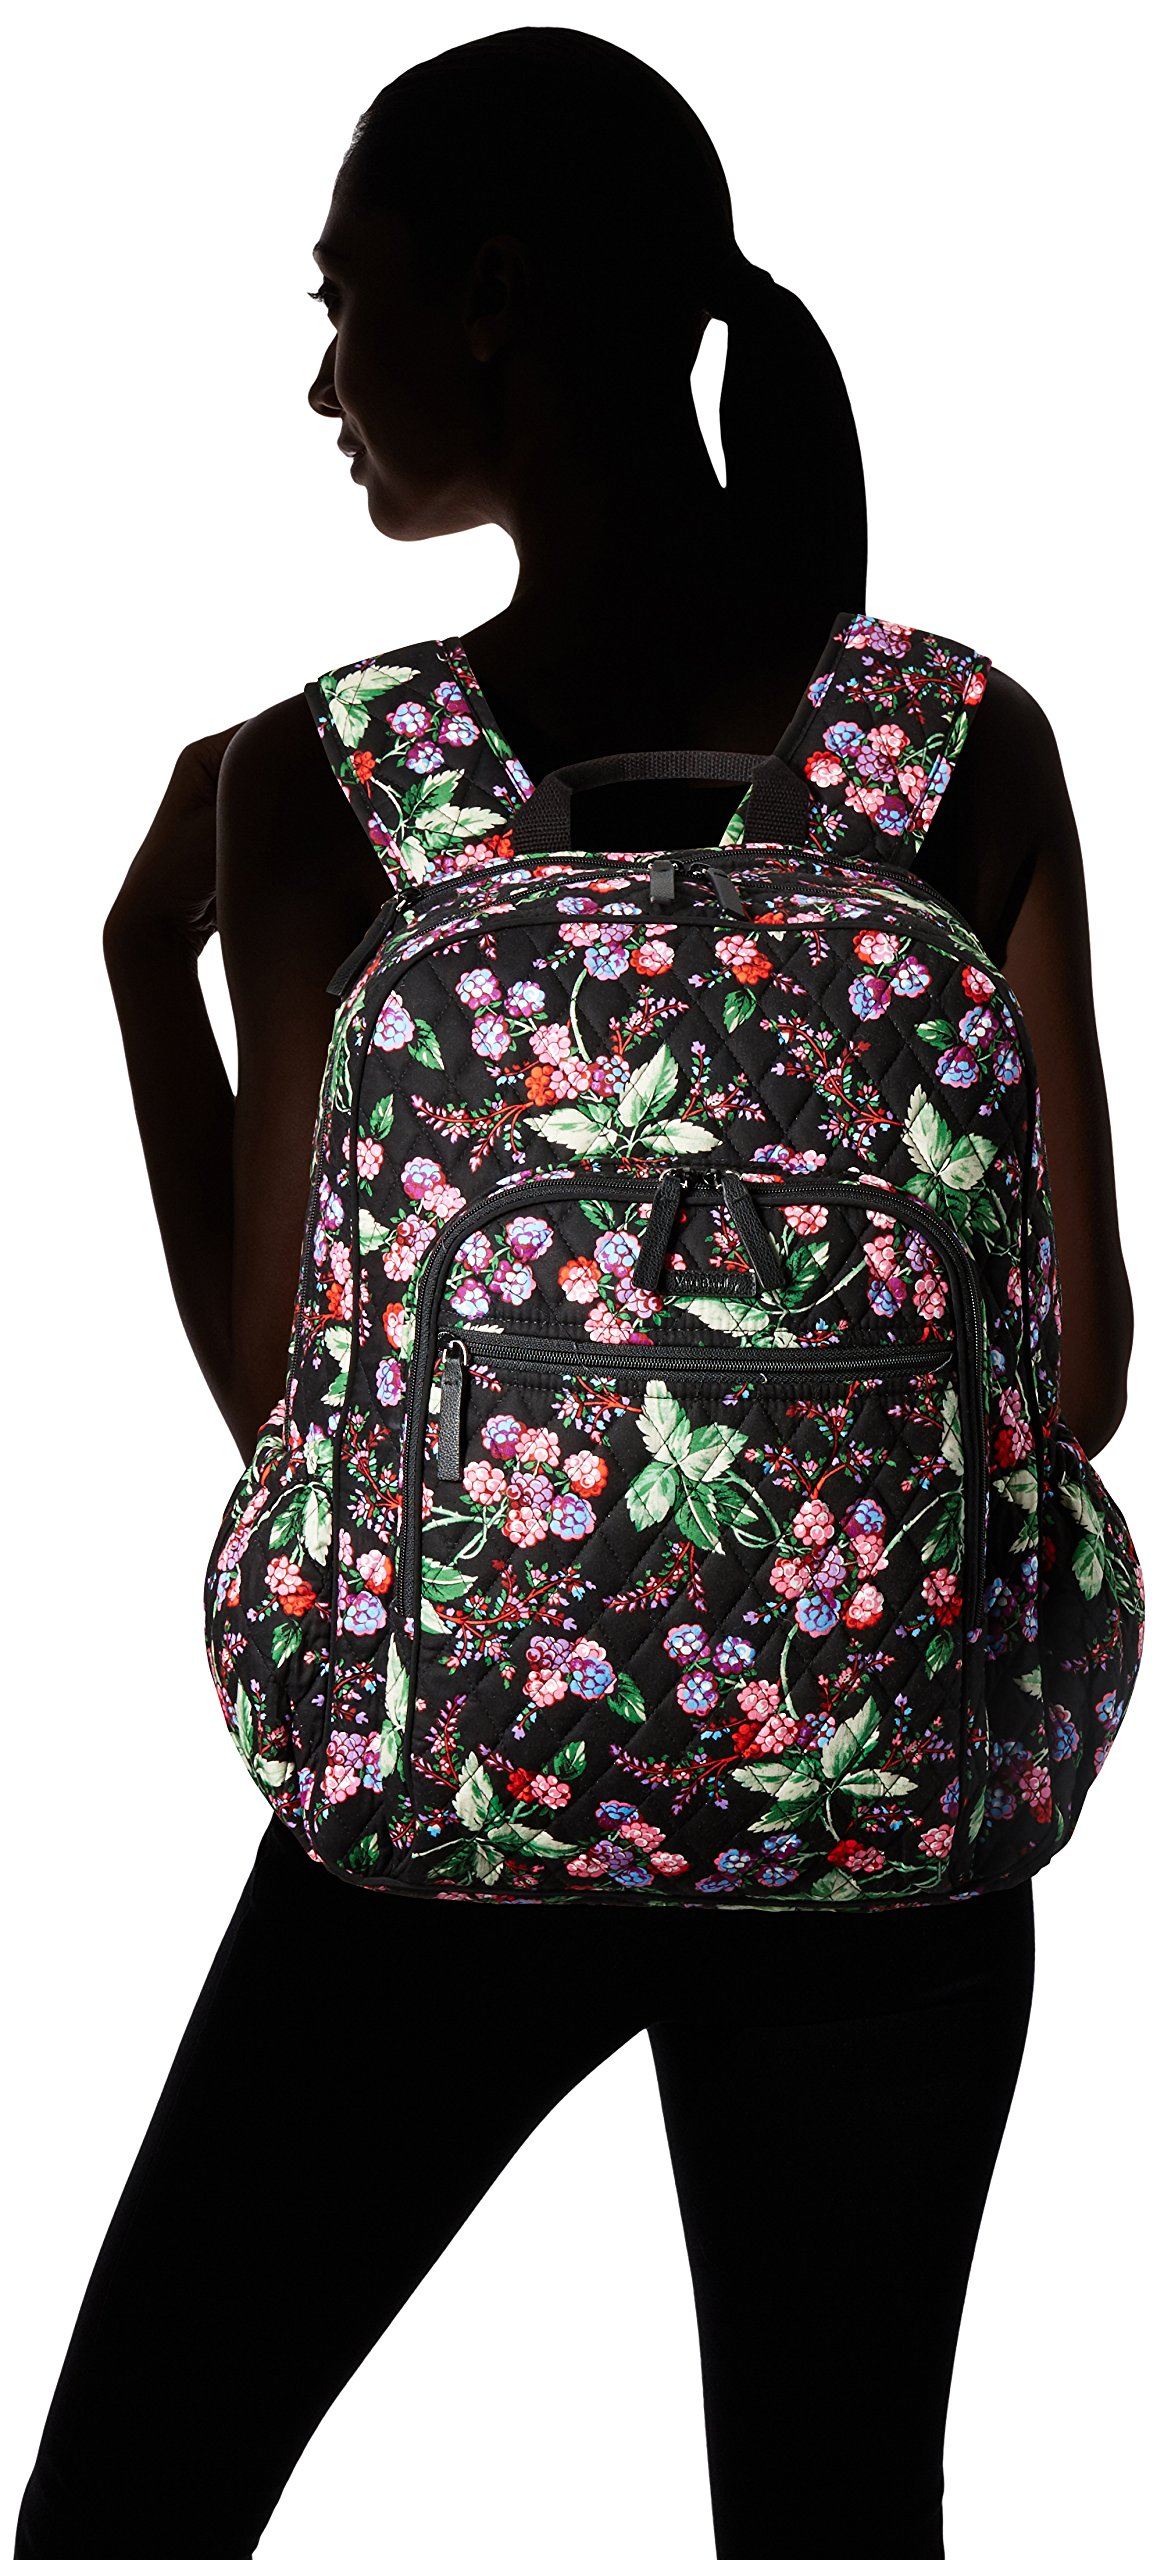 Vera Bradley Women's Campus Tech Backpack-Signature, Winter Berry by Vera Bradley (Image #4)